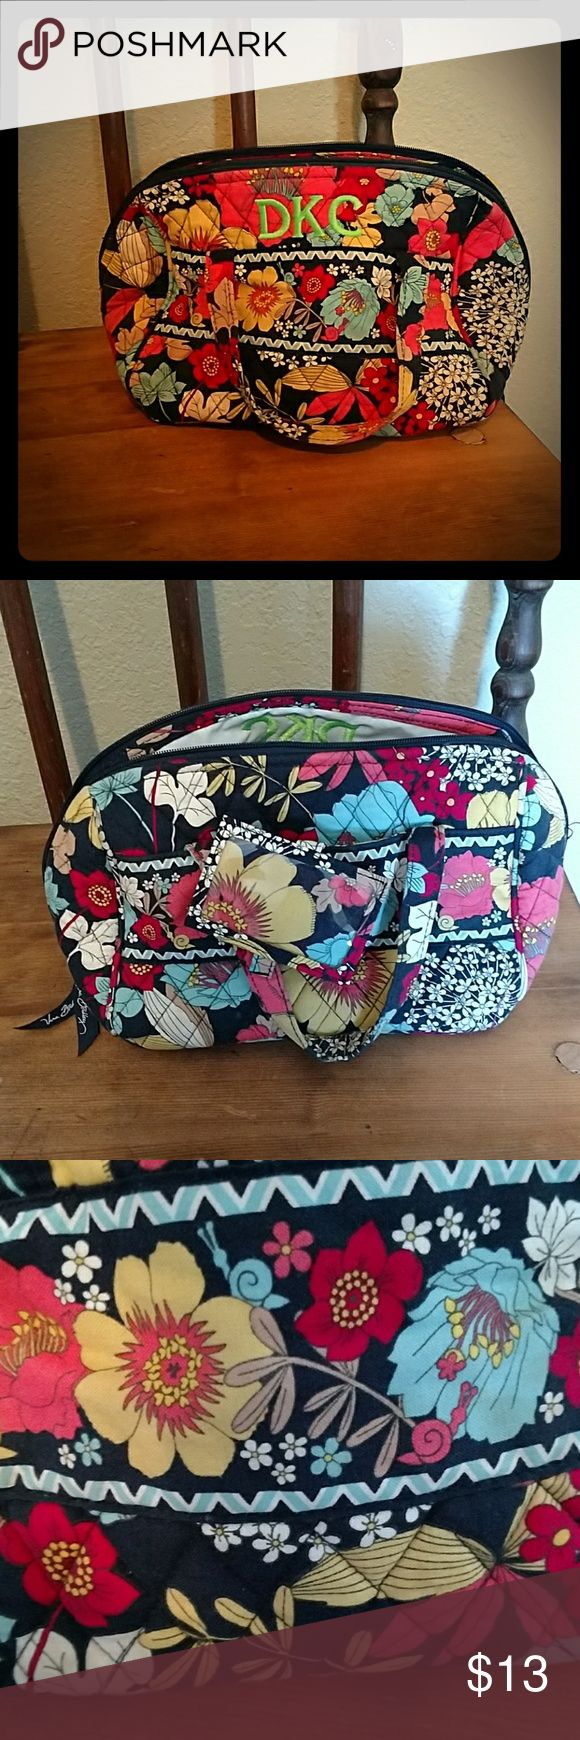 Vera Bradley travel bag No flaws just has initials? on it DKC Vera Bradley Bags Travel Bags